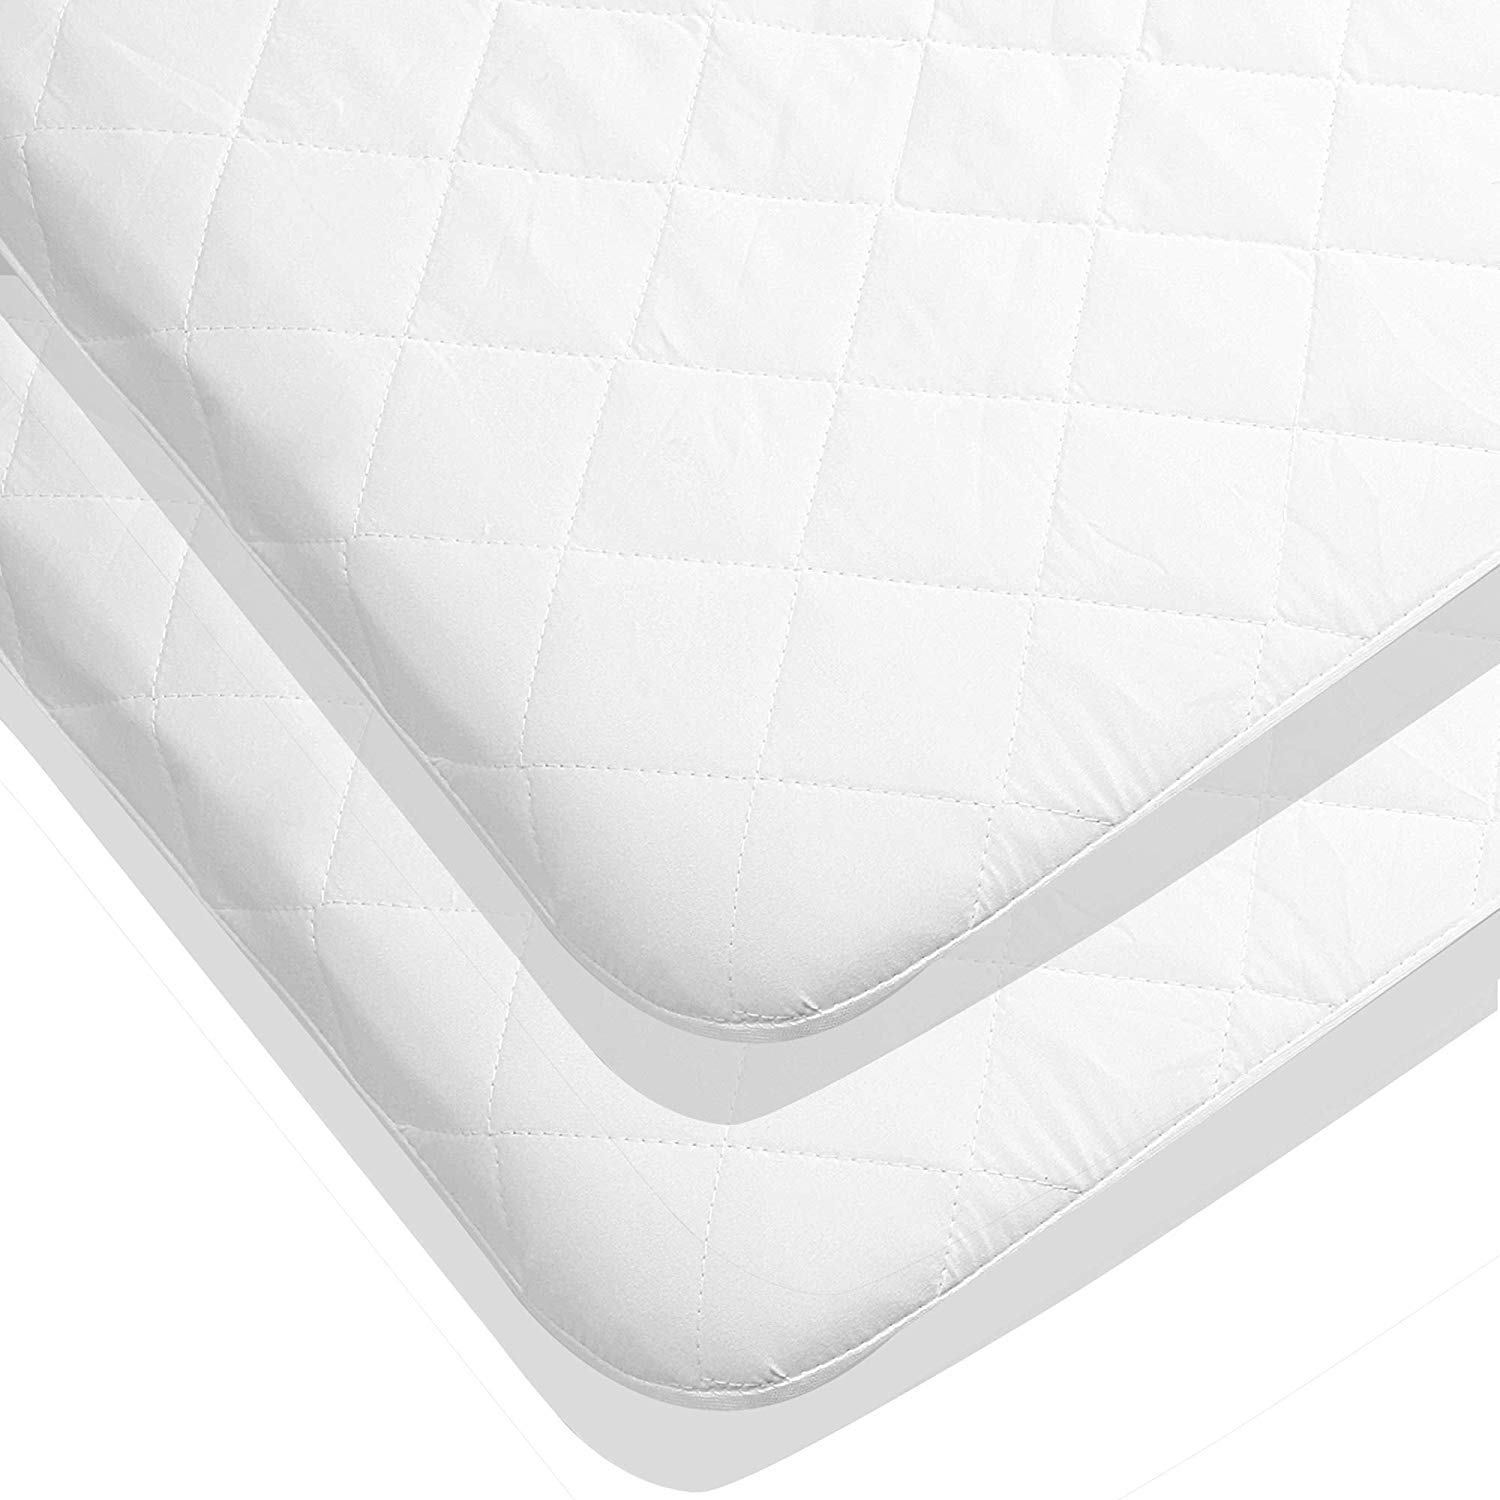 Utopia Bedding Waterproof Crib Mattress Protector - Quilted Crib Fitted - Cradle Mattress Pad (2 Pack) product image